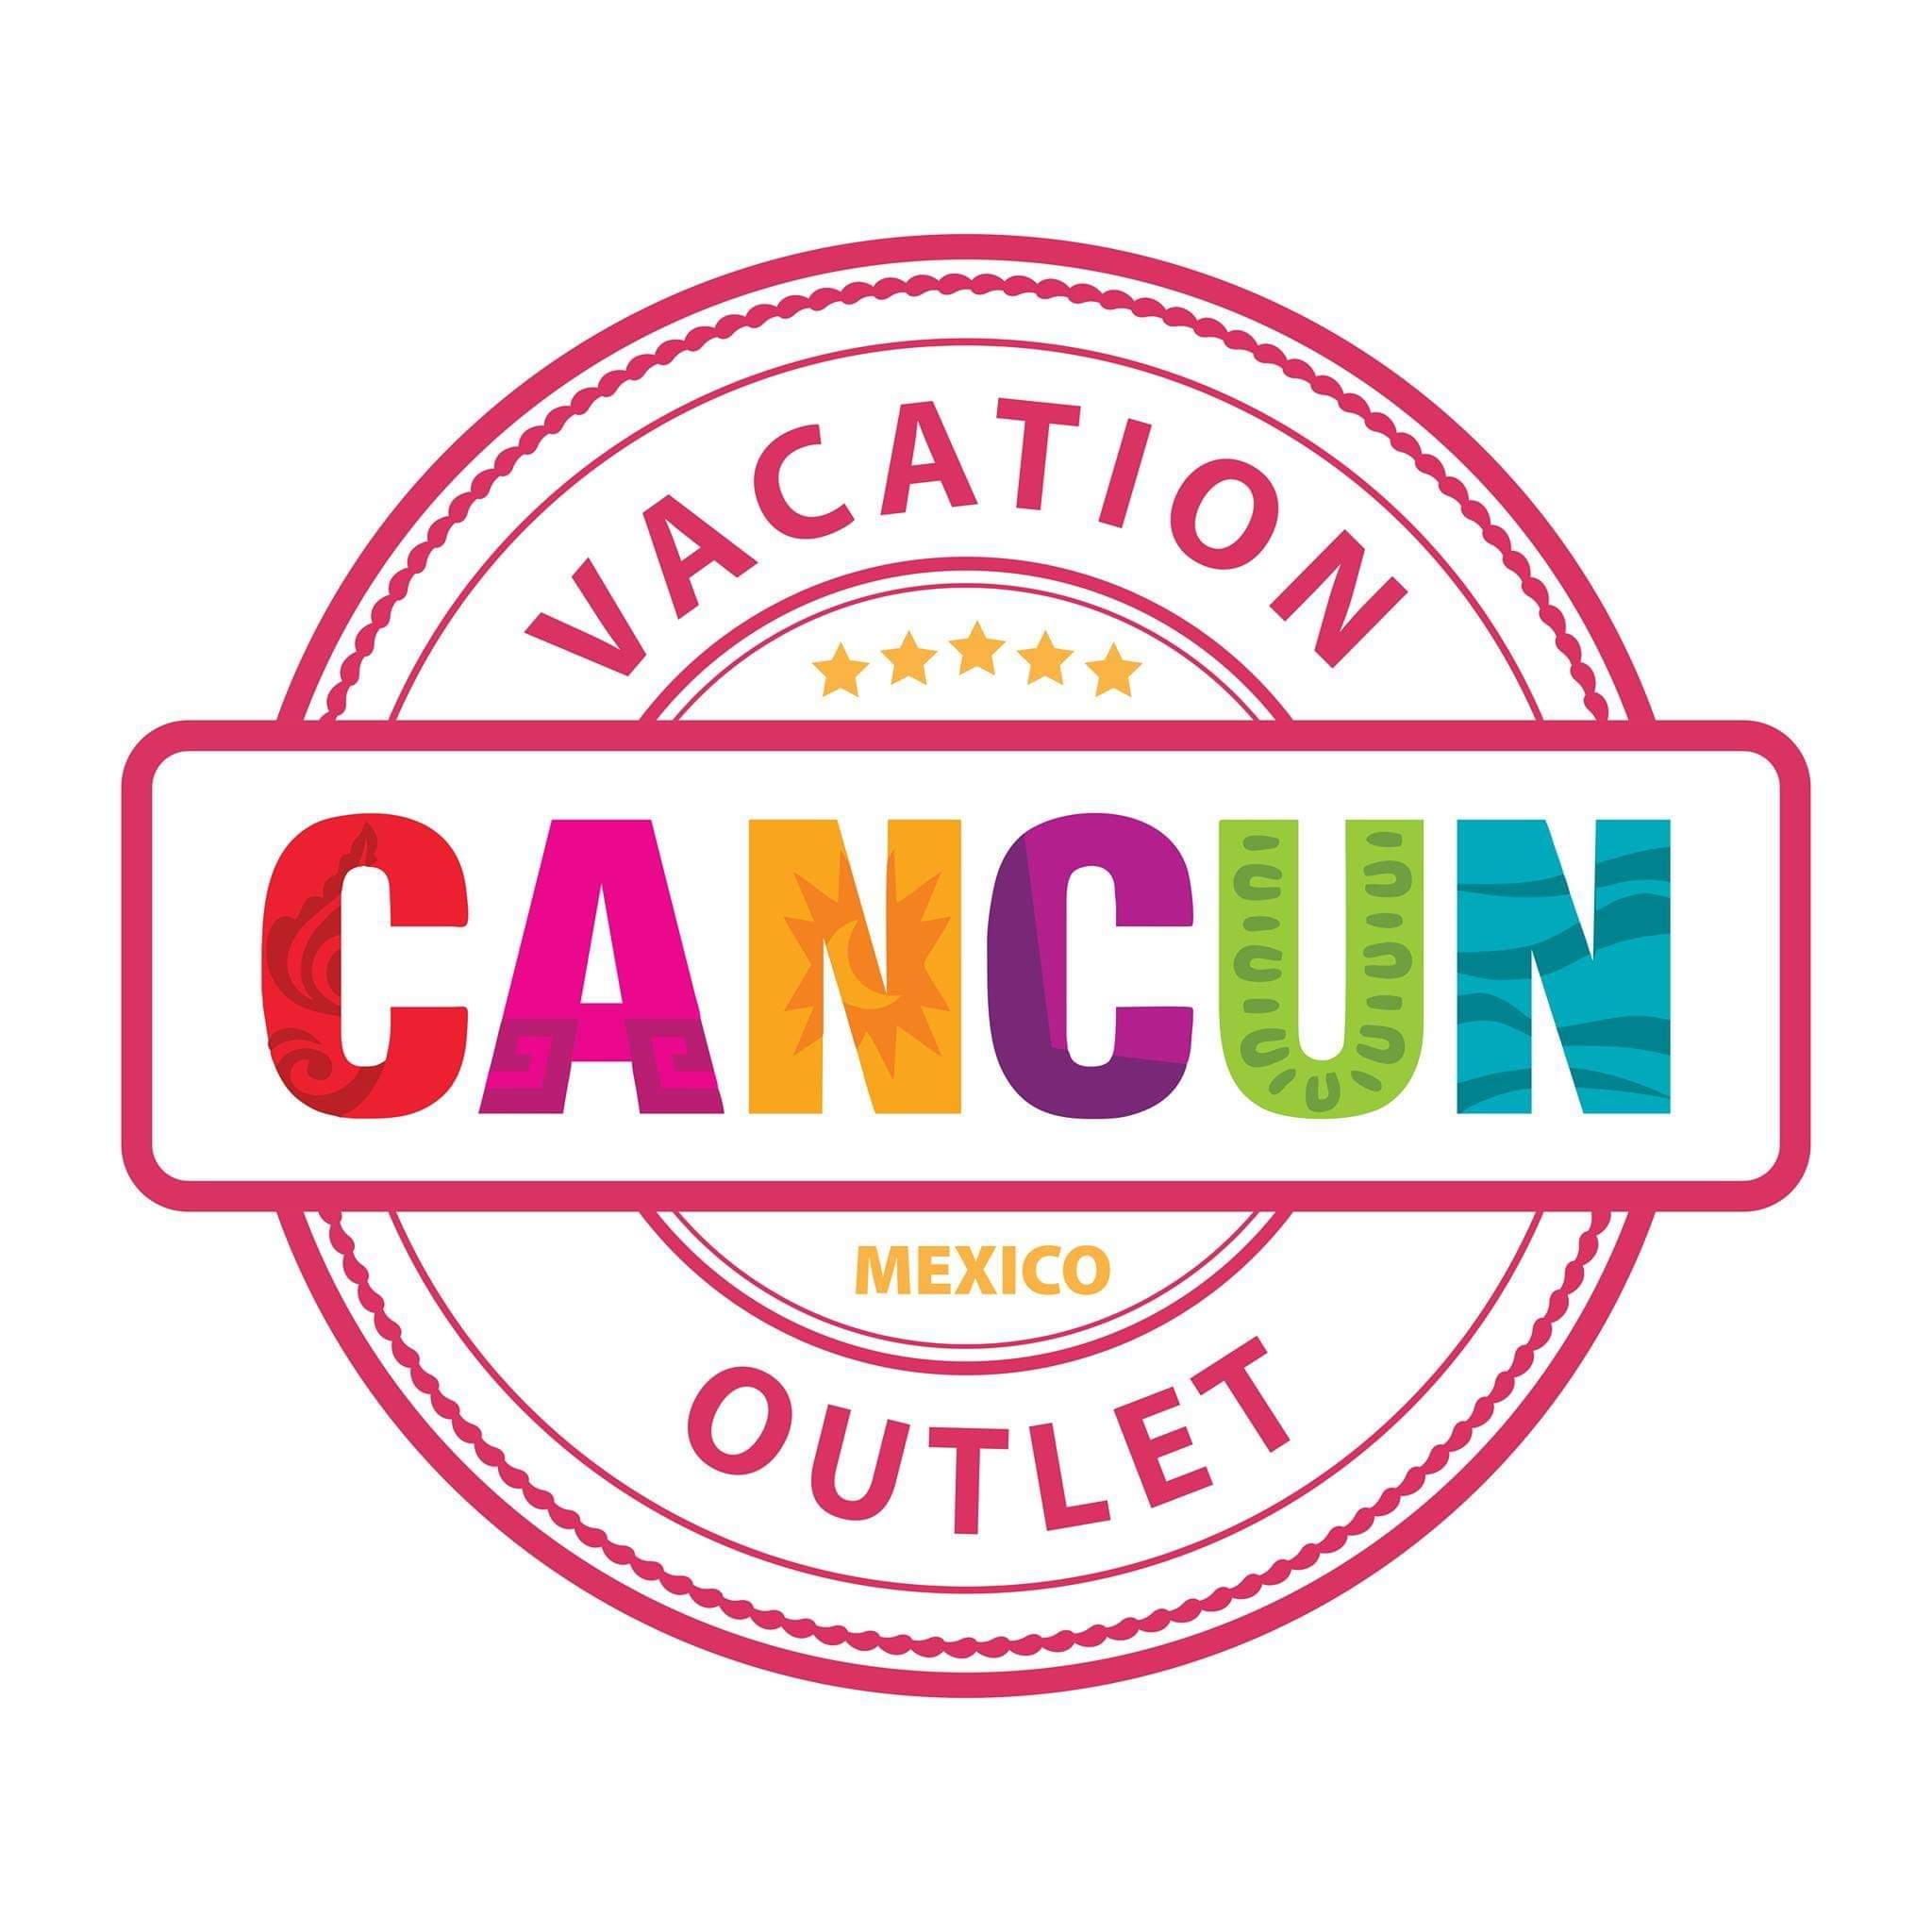 Cancun Vacation Outlet